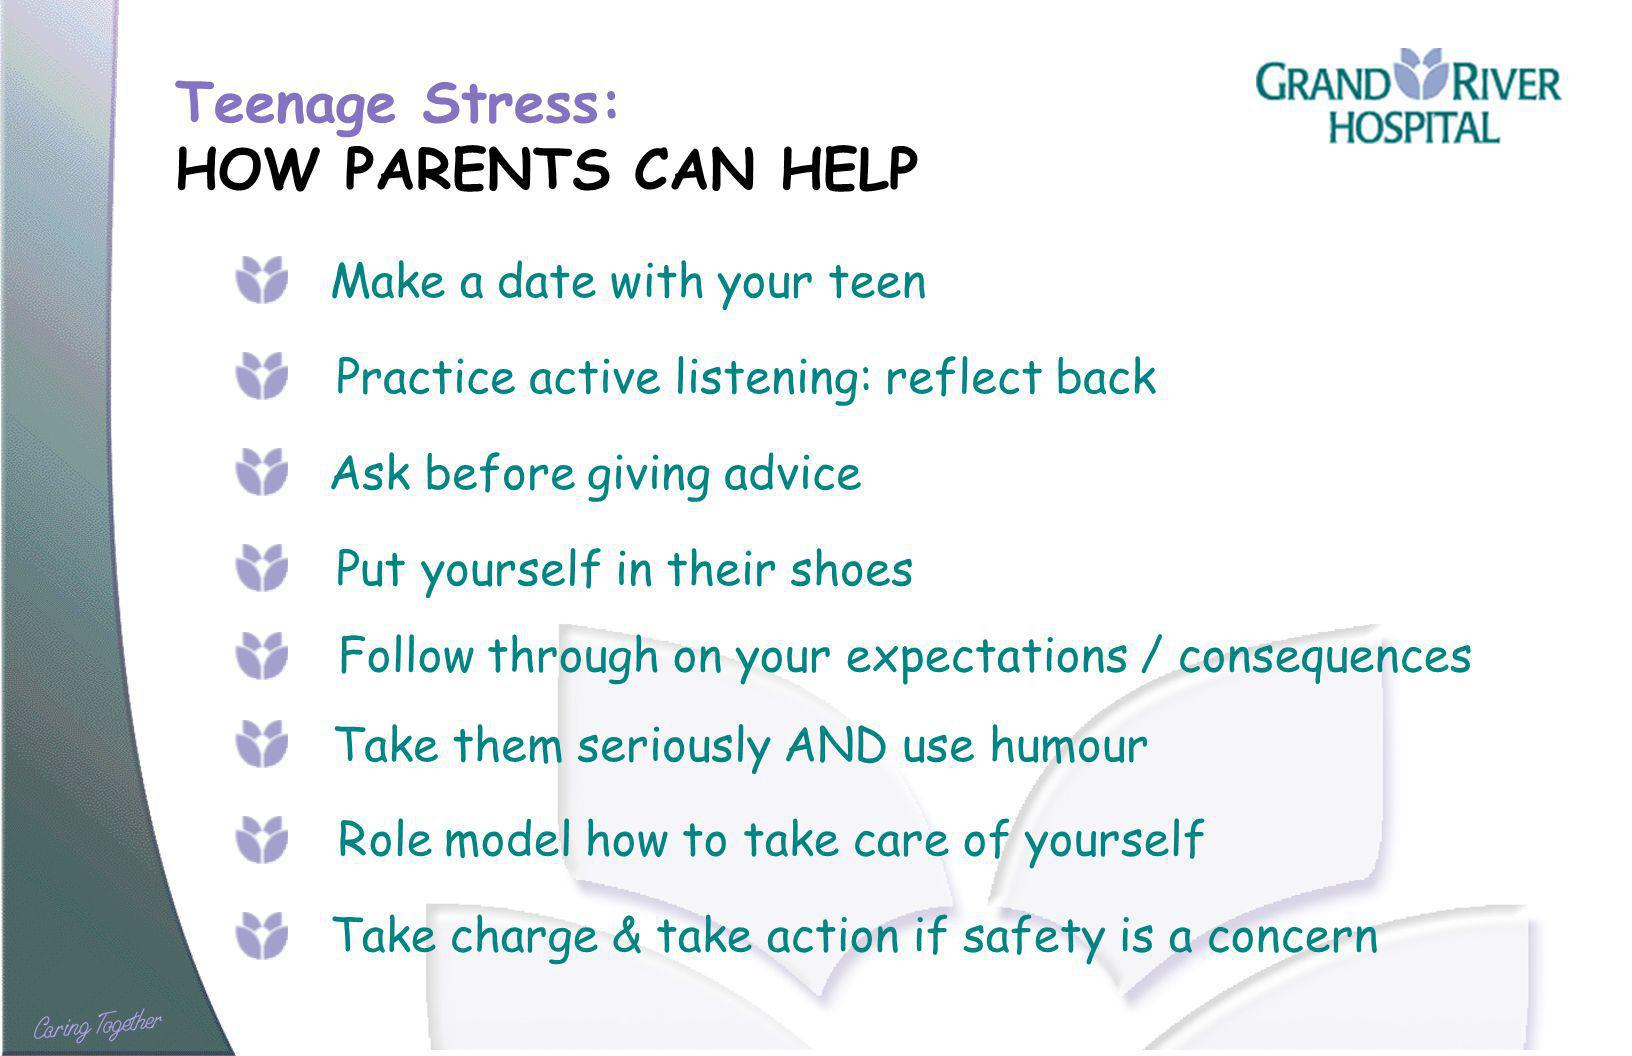 Teenage Stress: HOW PARENTS CAN HELP Make a date with your teen Practice active listening: reflect back Ask before giving advice Put yourself in their shoes Take them seriously AND use humour Take charge & take action if safety is a concern Follow through on your expectations / consequences Role model how to take care of yourself